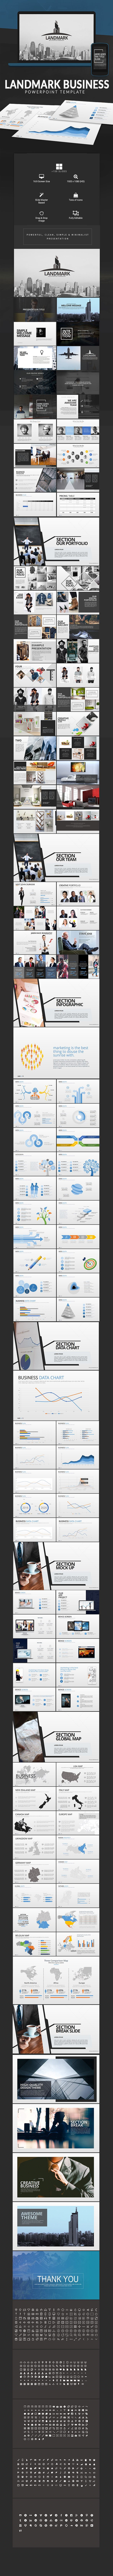 Landmark Business PowerPoint Template. Download here: https://graphicriver.net/item/landmark-business-powerpoint/17301202?ref=ksioks